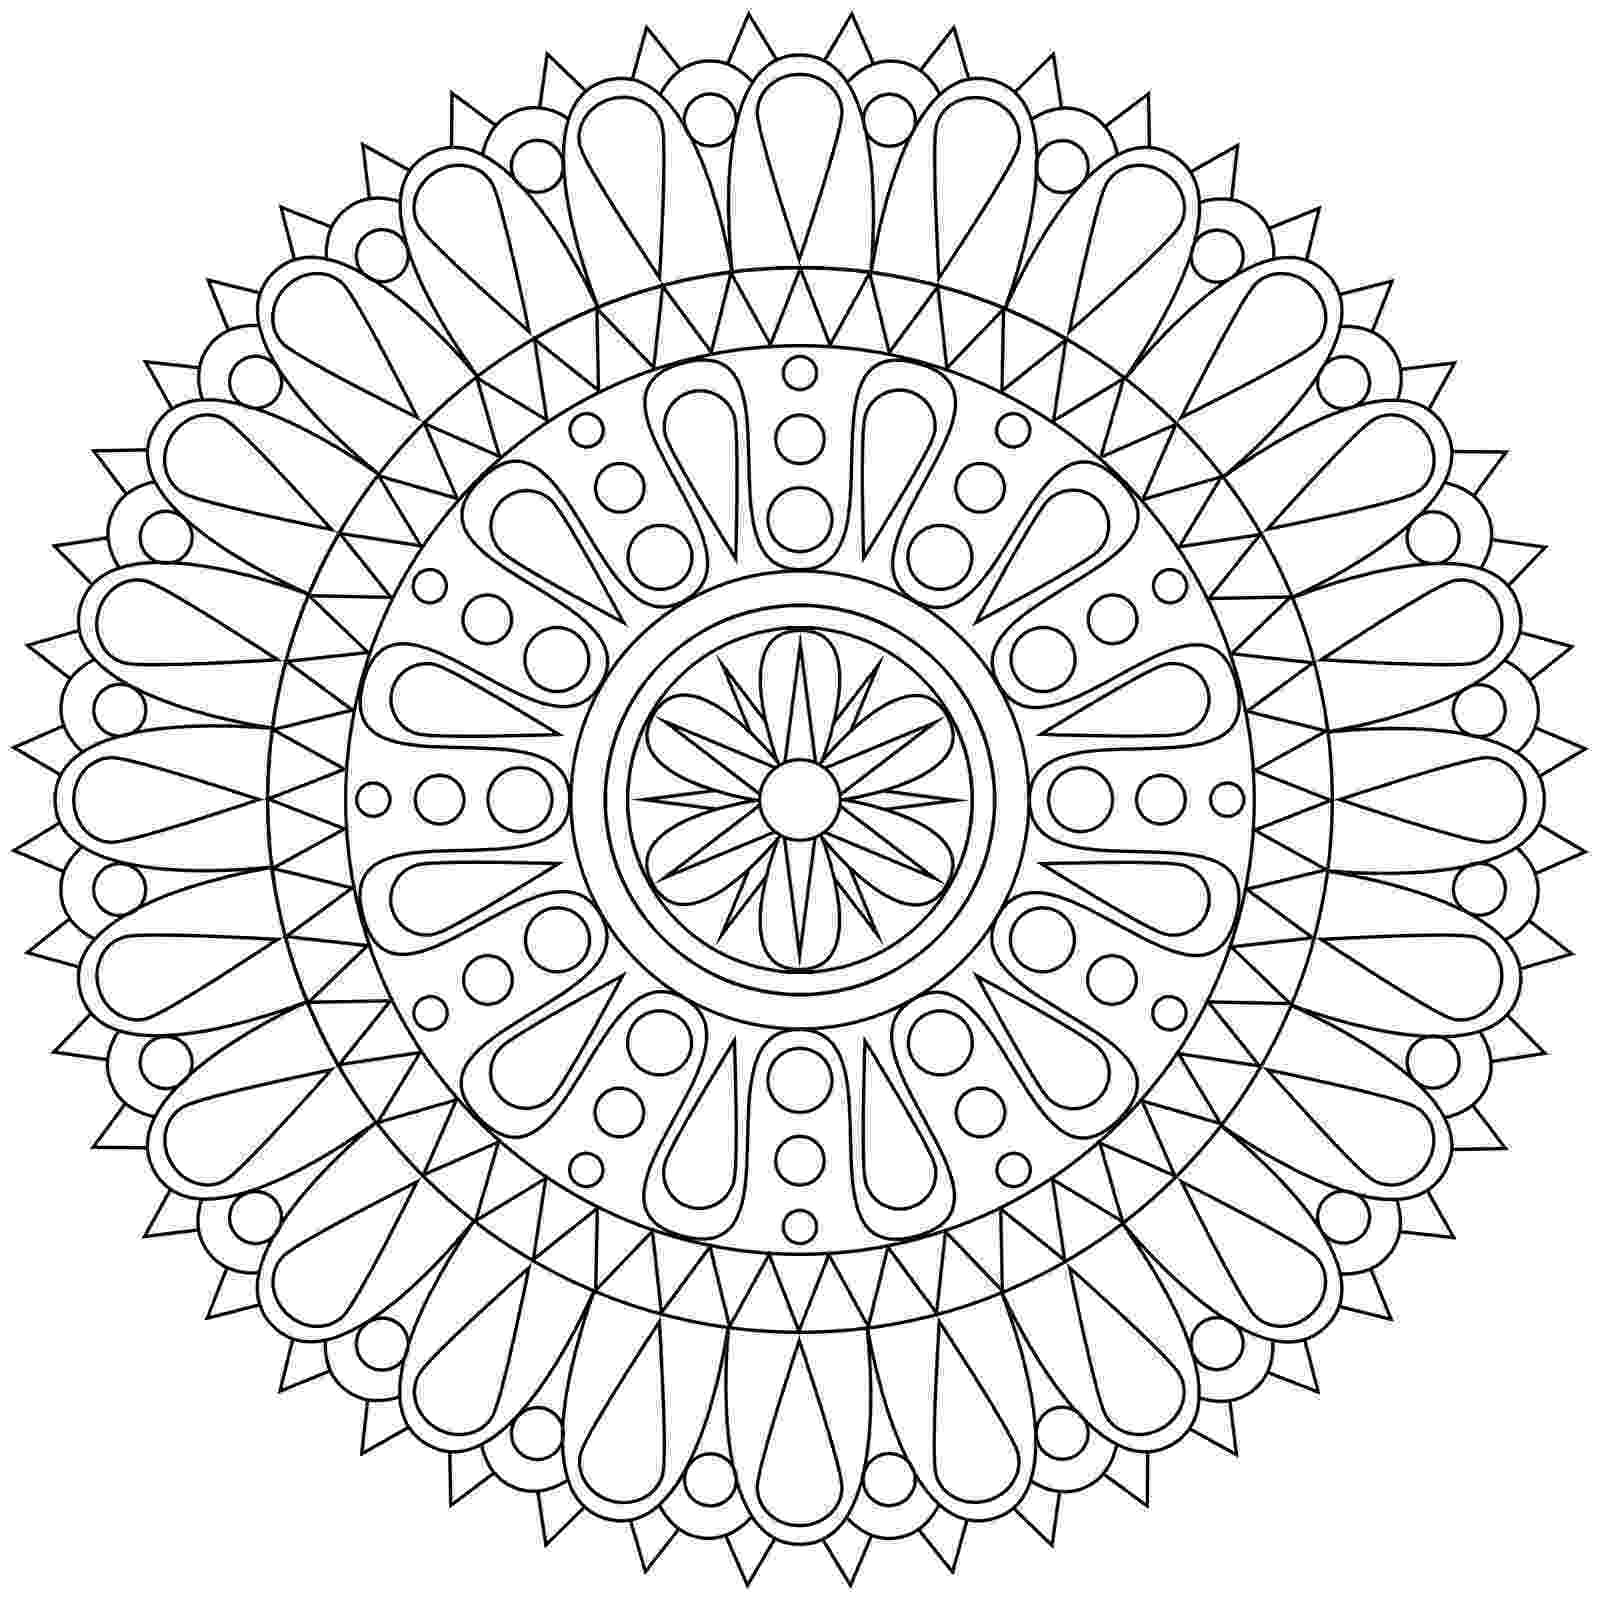 mandela colouring beautiful free mandala coloring pages skip to my lou colouring mandela